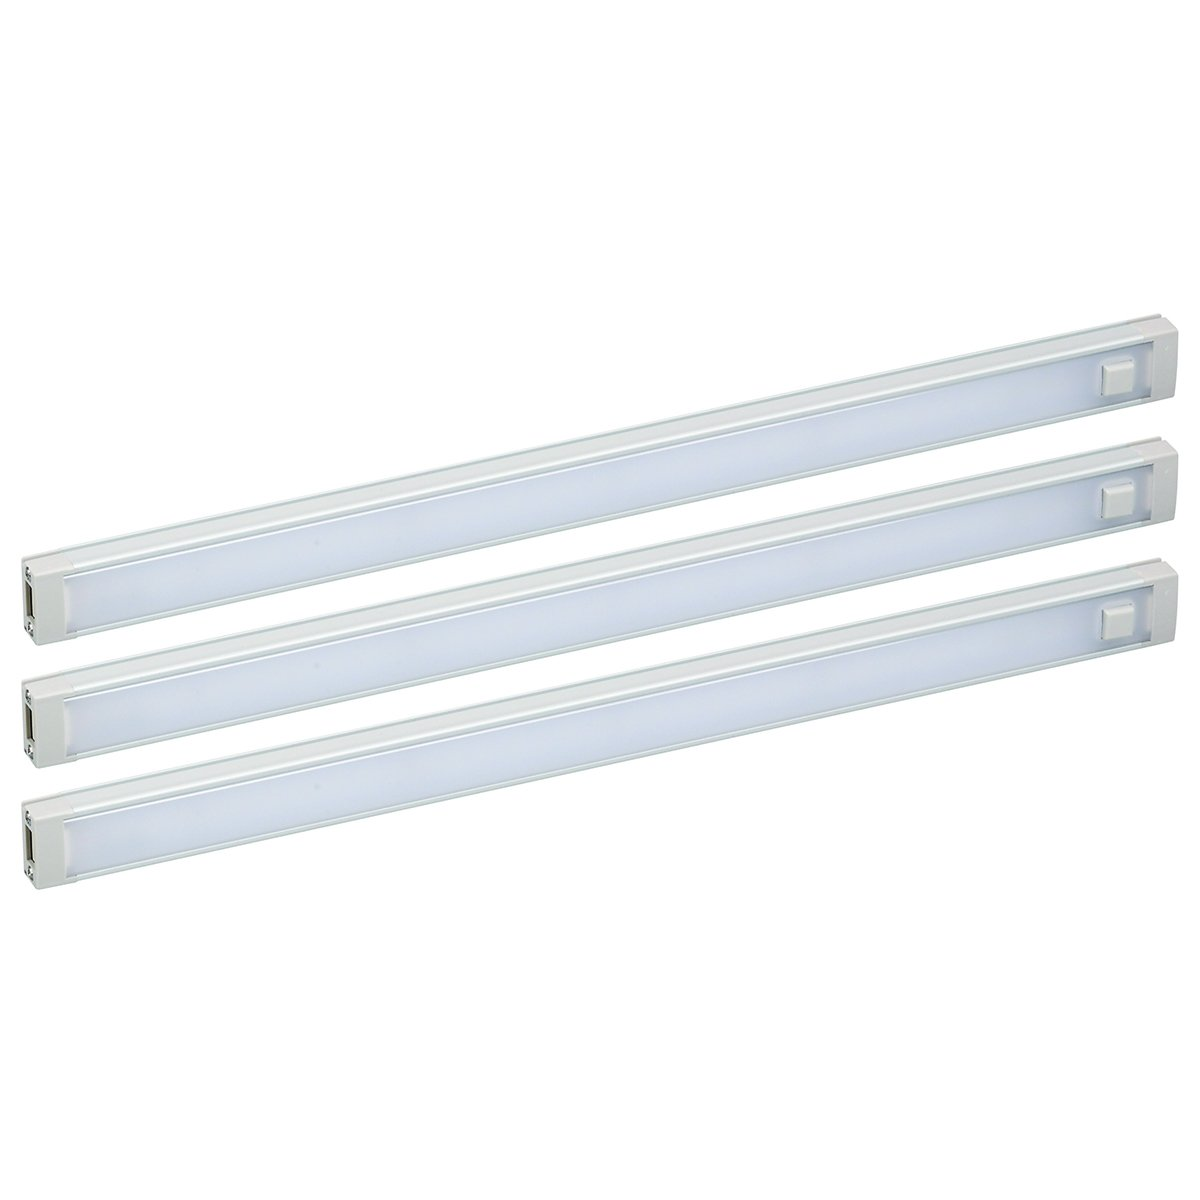 BLACK+DECKER LED Under Cabinet Lighting Kit, 3-Bars, 12 Inches Each, DIY Tool-Free Installation with Magnetic Option, Natural Daylight, 5000K, 1290 Lumens, 18 Watts, Office Task Lighting (LEDUC12-3DK) by Black and Decker Office Products